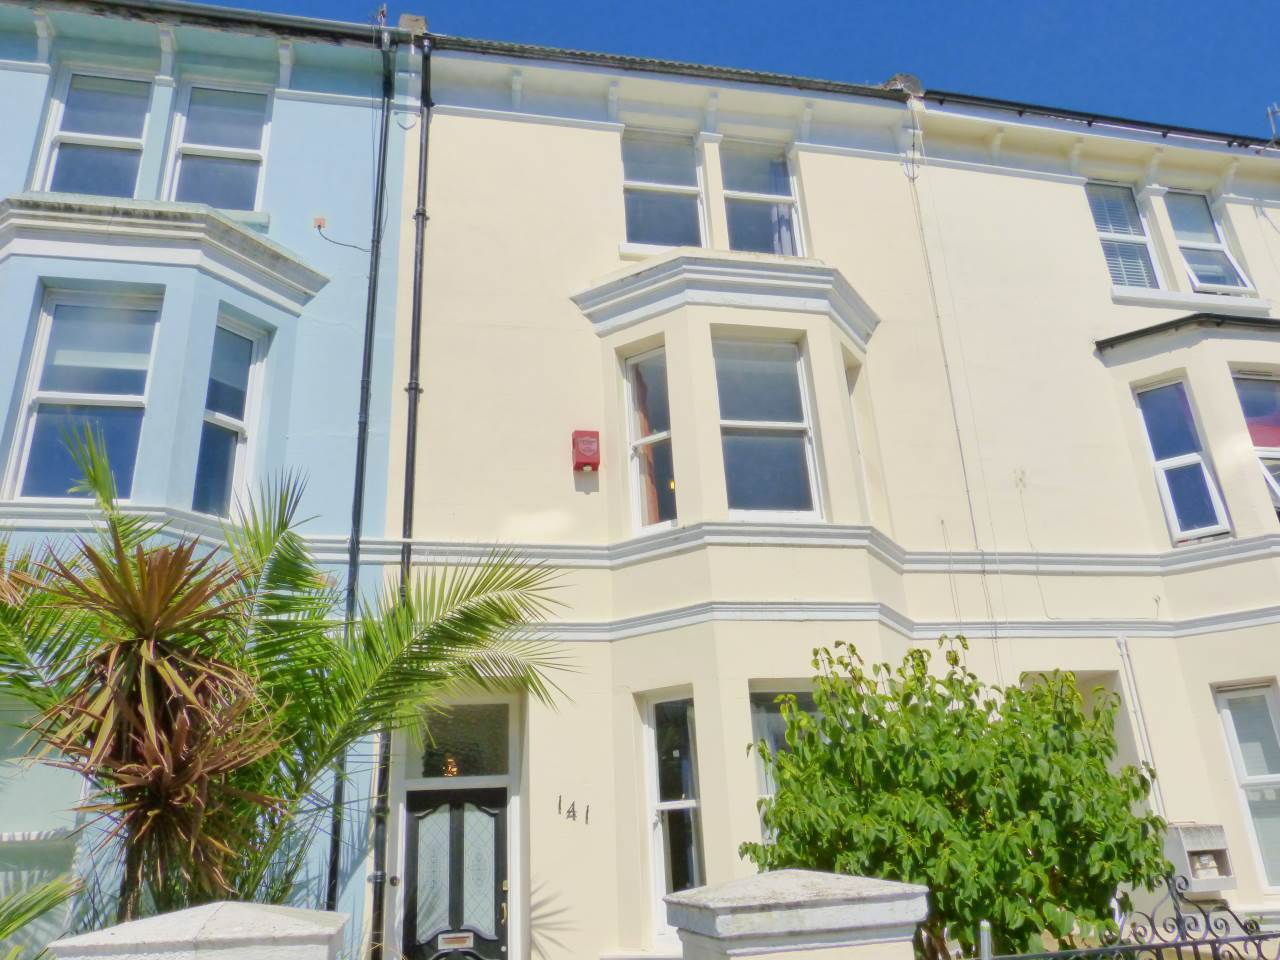 6 bed house to rent in 145 Queens Park Road BN2 0GH  - Property Image 1